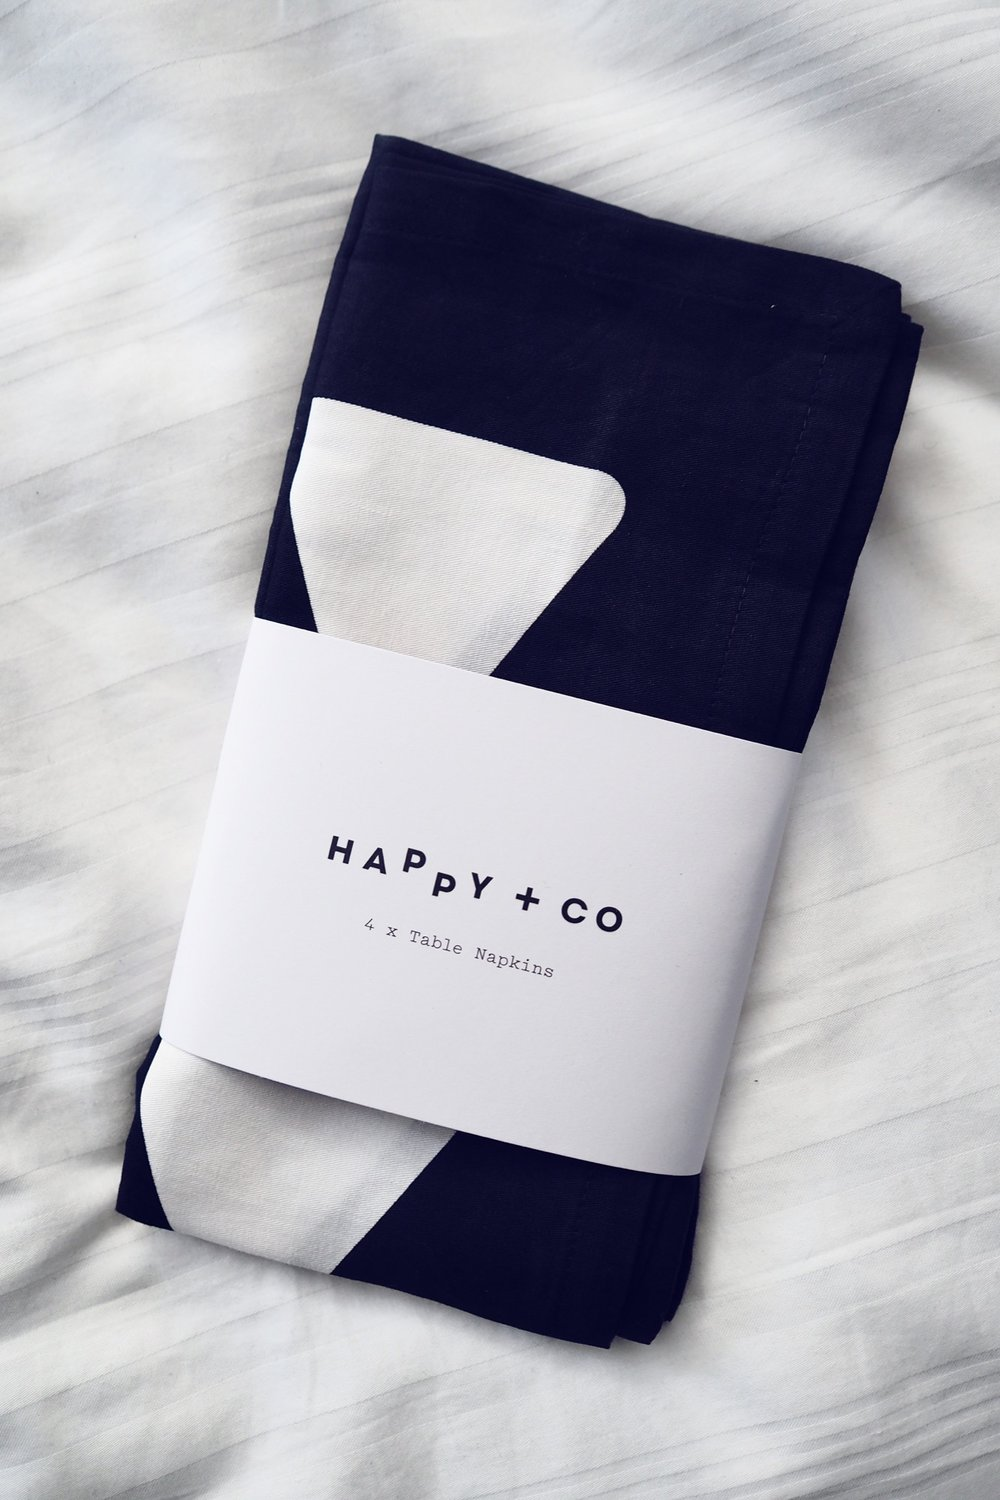 sustainable homewares with Happy + Co